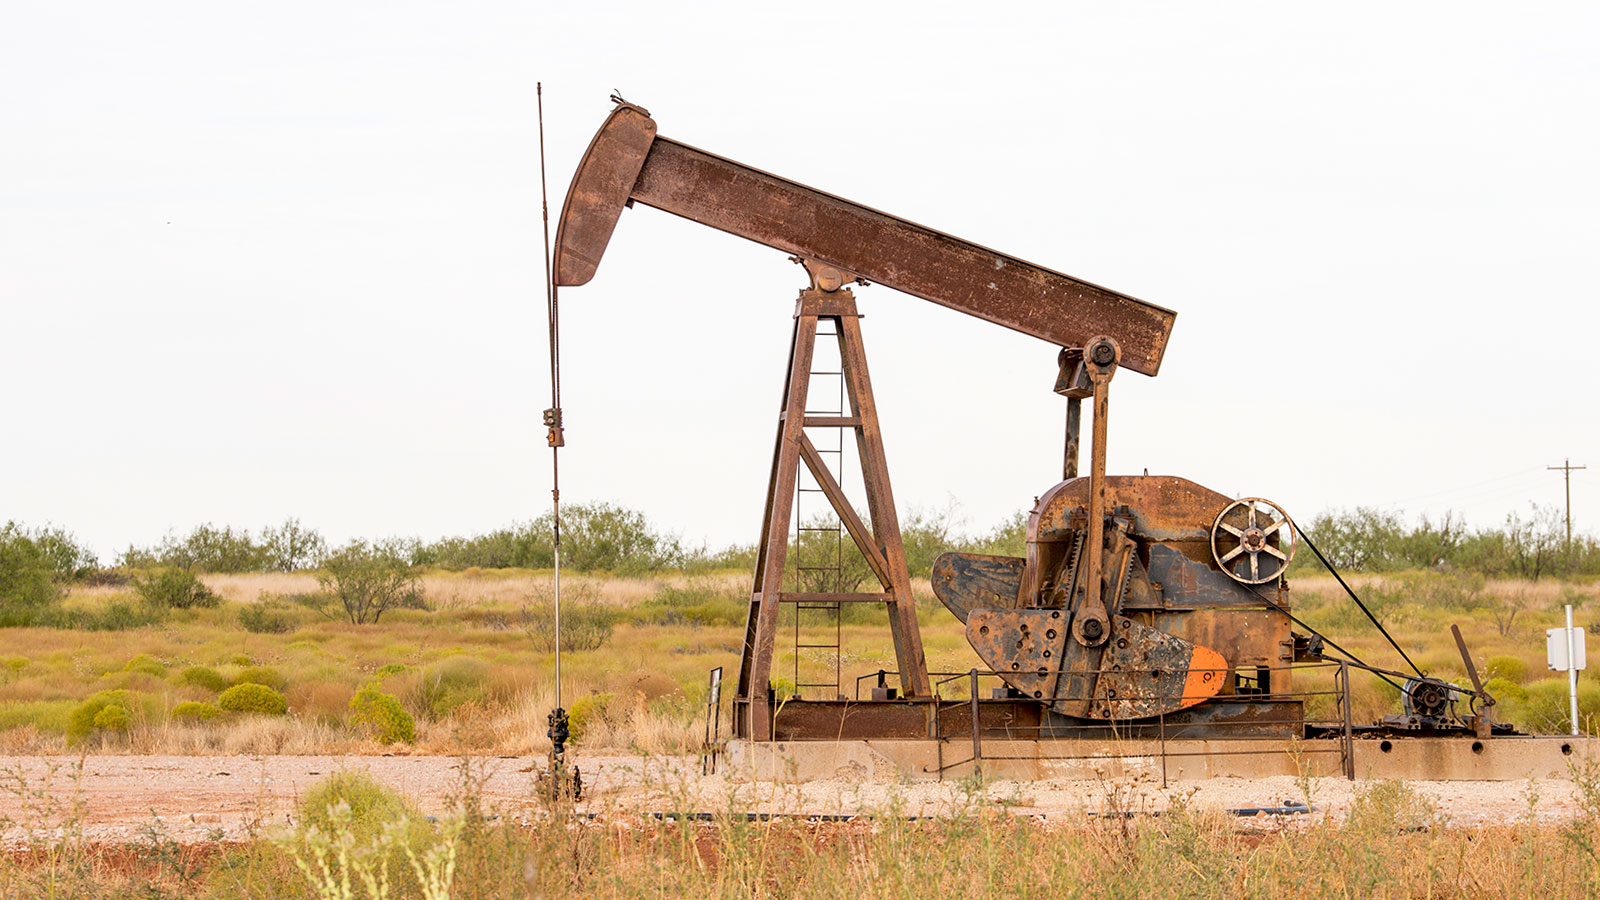 Photograph of a rusty oil pumpjack